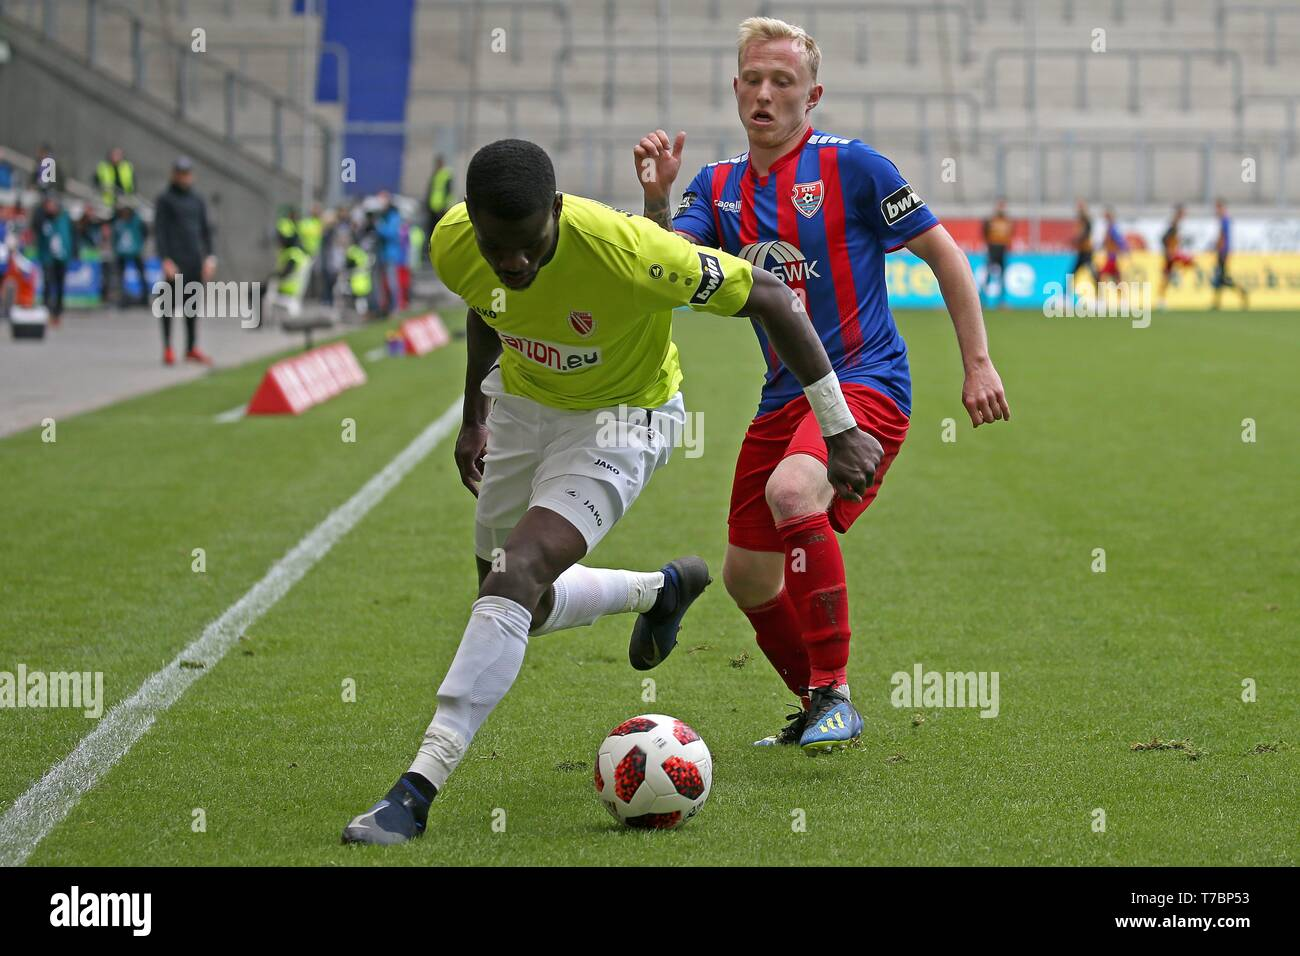 Duisburg, Deutschland. 05th May, 2019. firo: 05.05.2019 Football, 3. Bundesliga, season 2018/2019 KFC Uerdingen 05 - FC Energie Cottbus Patrick PflÃ_cke (# 10, KFC Uerdingen 05) in duels with Jossà © -Junior Matuwila (# 5, FC Energie Cottbus) | usage worldwide Credit: dpa/Alamy Live News - Stock Image